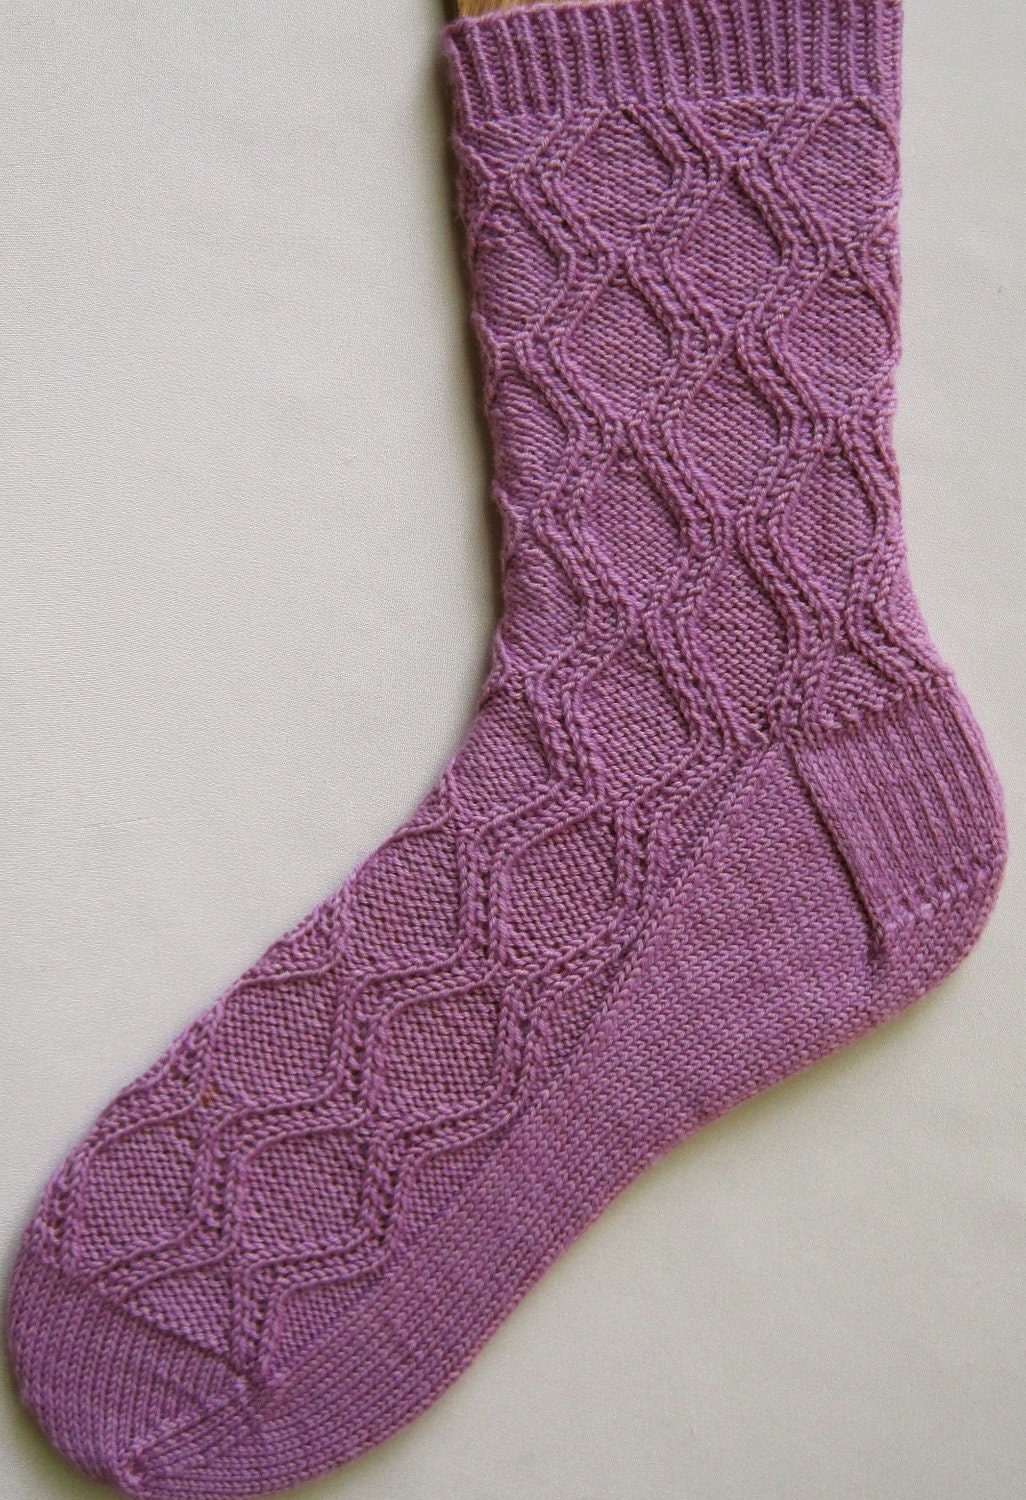 Socks Knitting Pattern : Knit Sock Pattern: Hourglass Socks